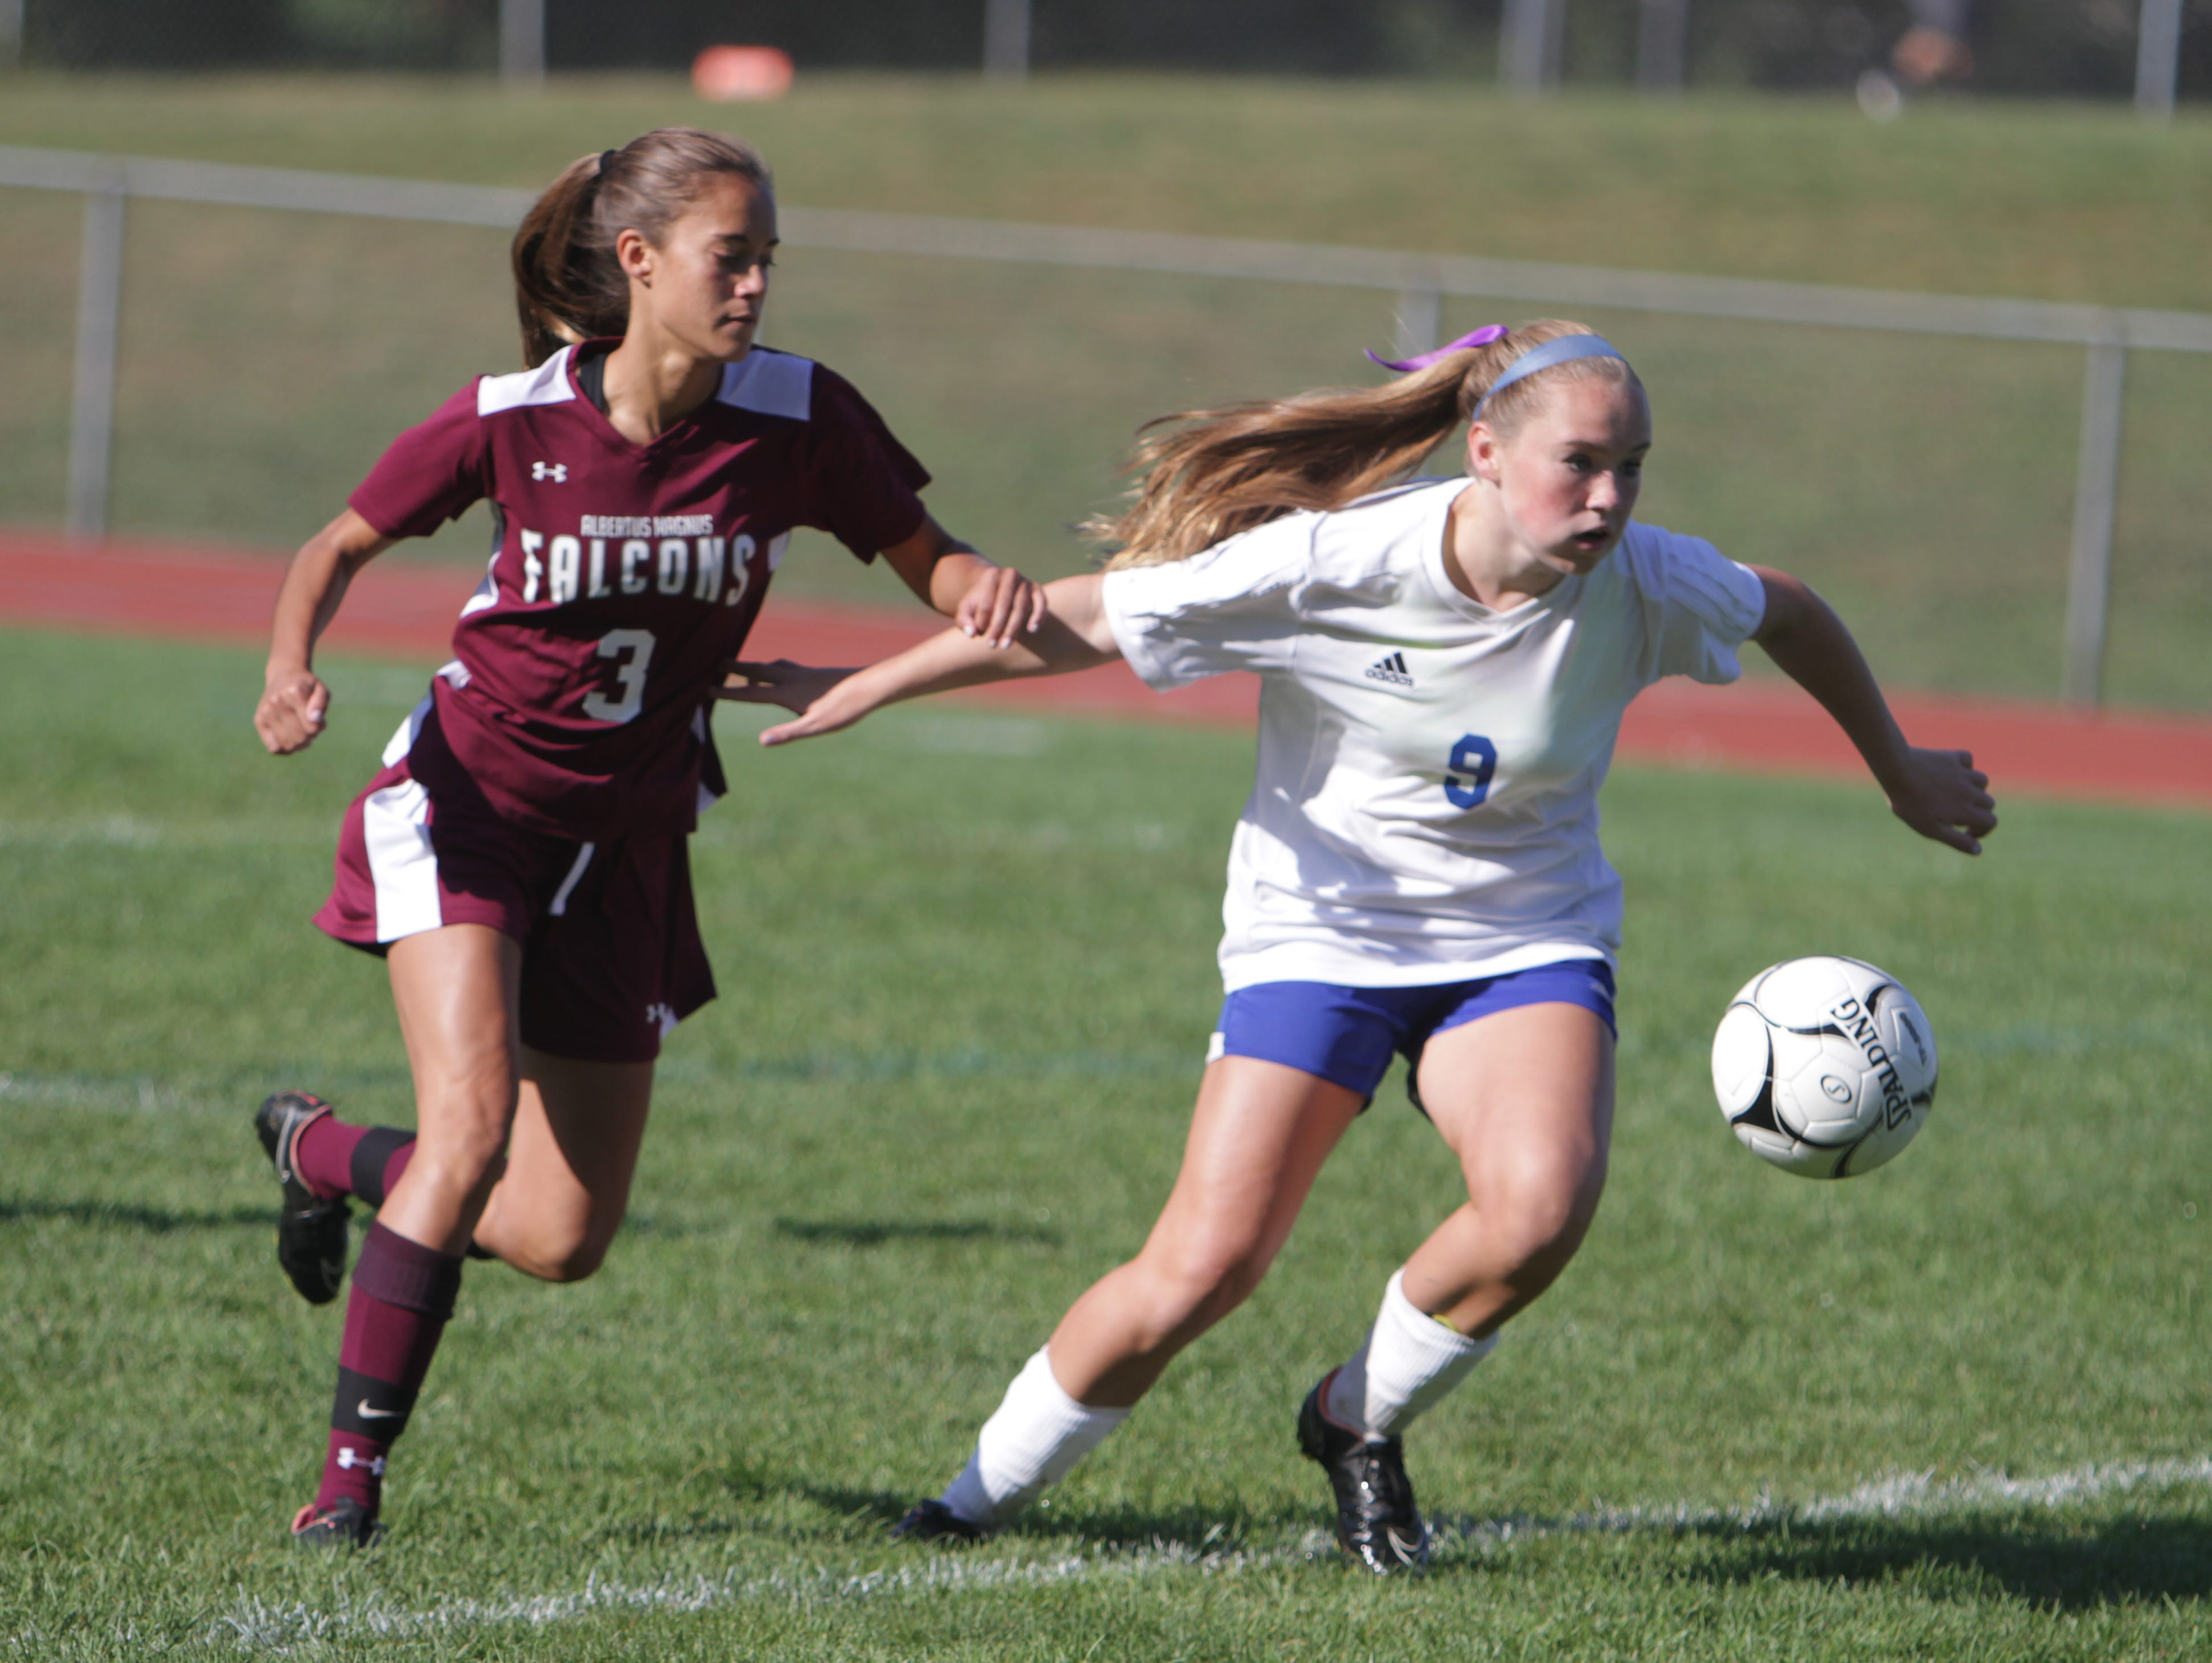 Albertus Magnus' Dani LaRochelle (3) and Pearl River's Julia Pozzuto chase after the ball during a Section 1 girls soccer game between Pearl River and Albertus Magnus at Pearl River High School on Saturday, Sept. 17th, 2016. The teams played to a scoreless draw.